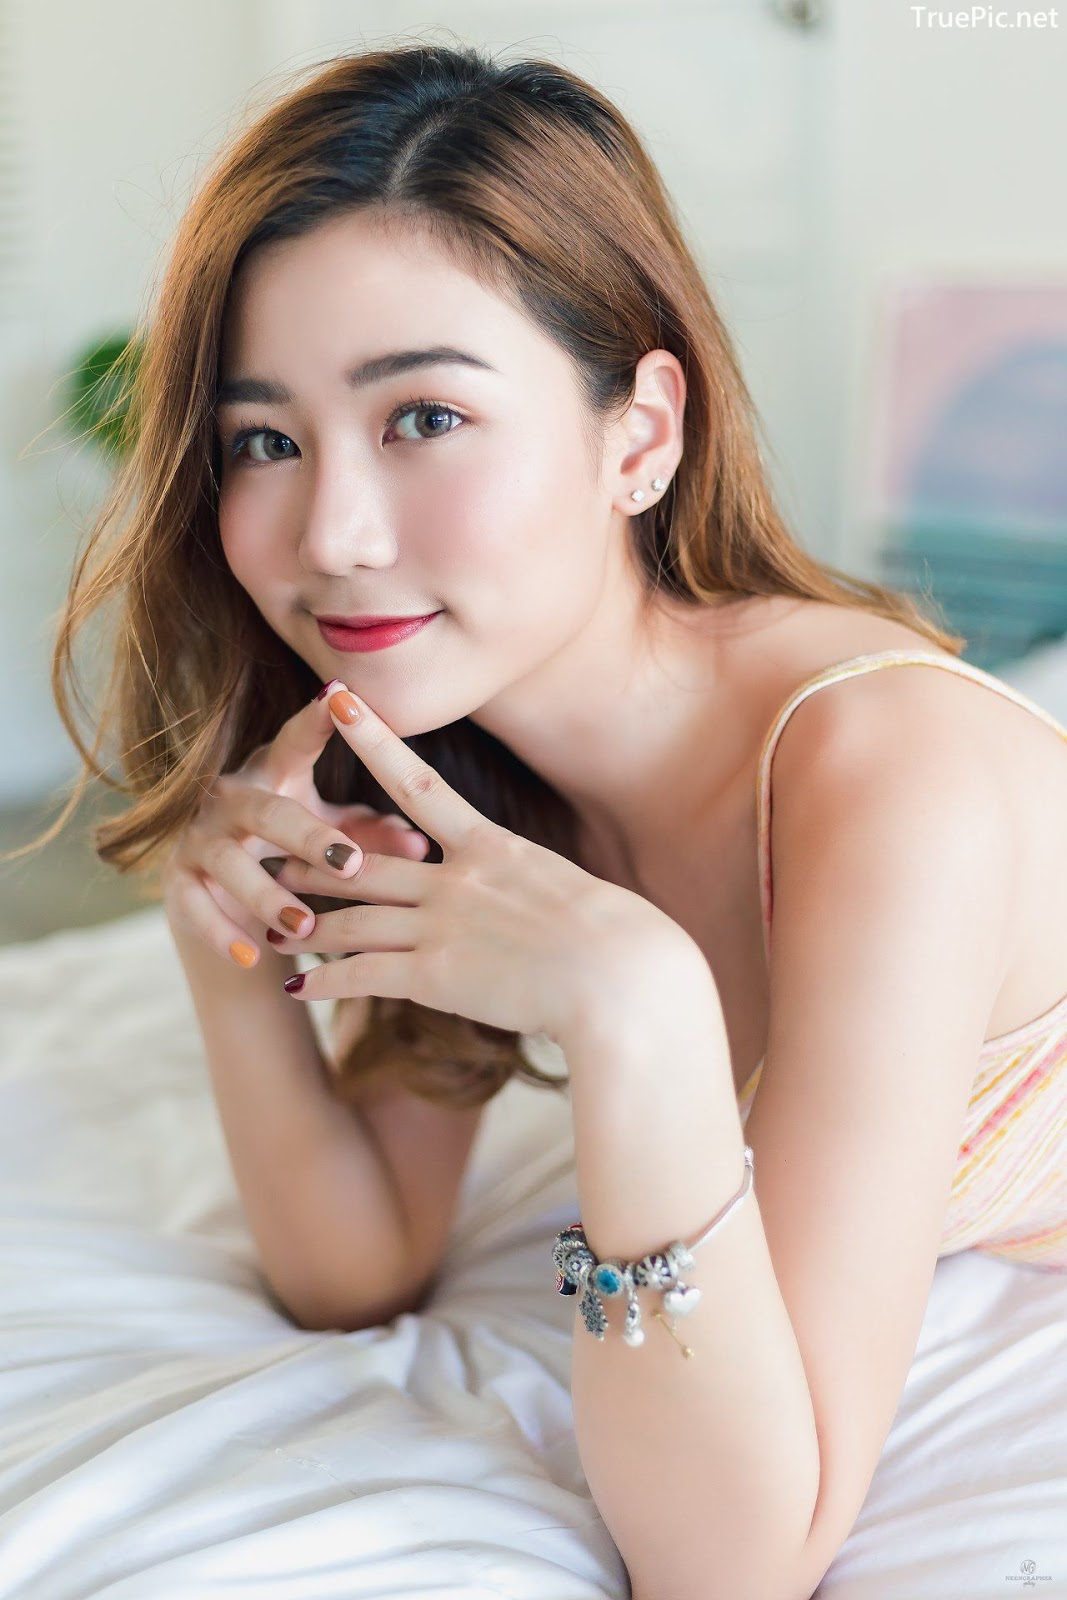 Image-Thailand-Beautiful-Girl-Pattaravadee-Boonmeesup-Social-Isolation-Day-TruePic.net- Picture-6